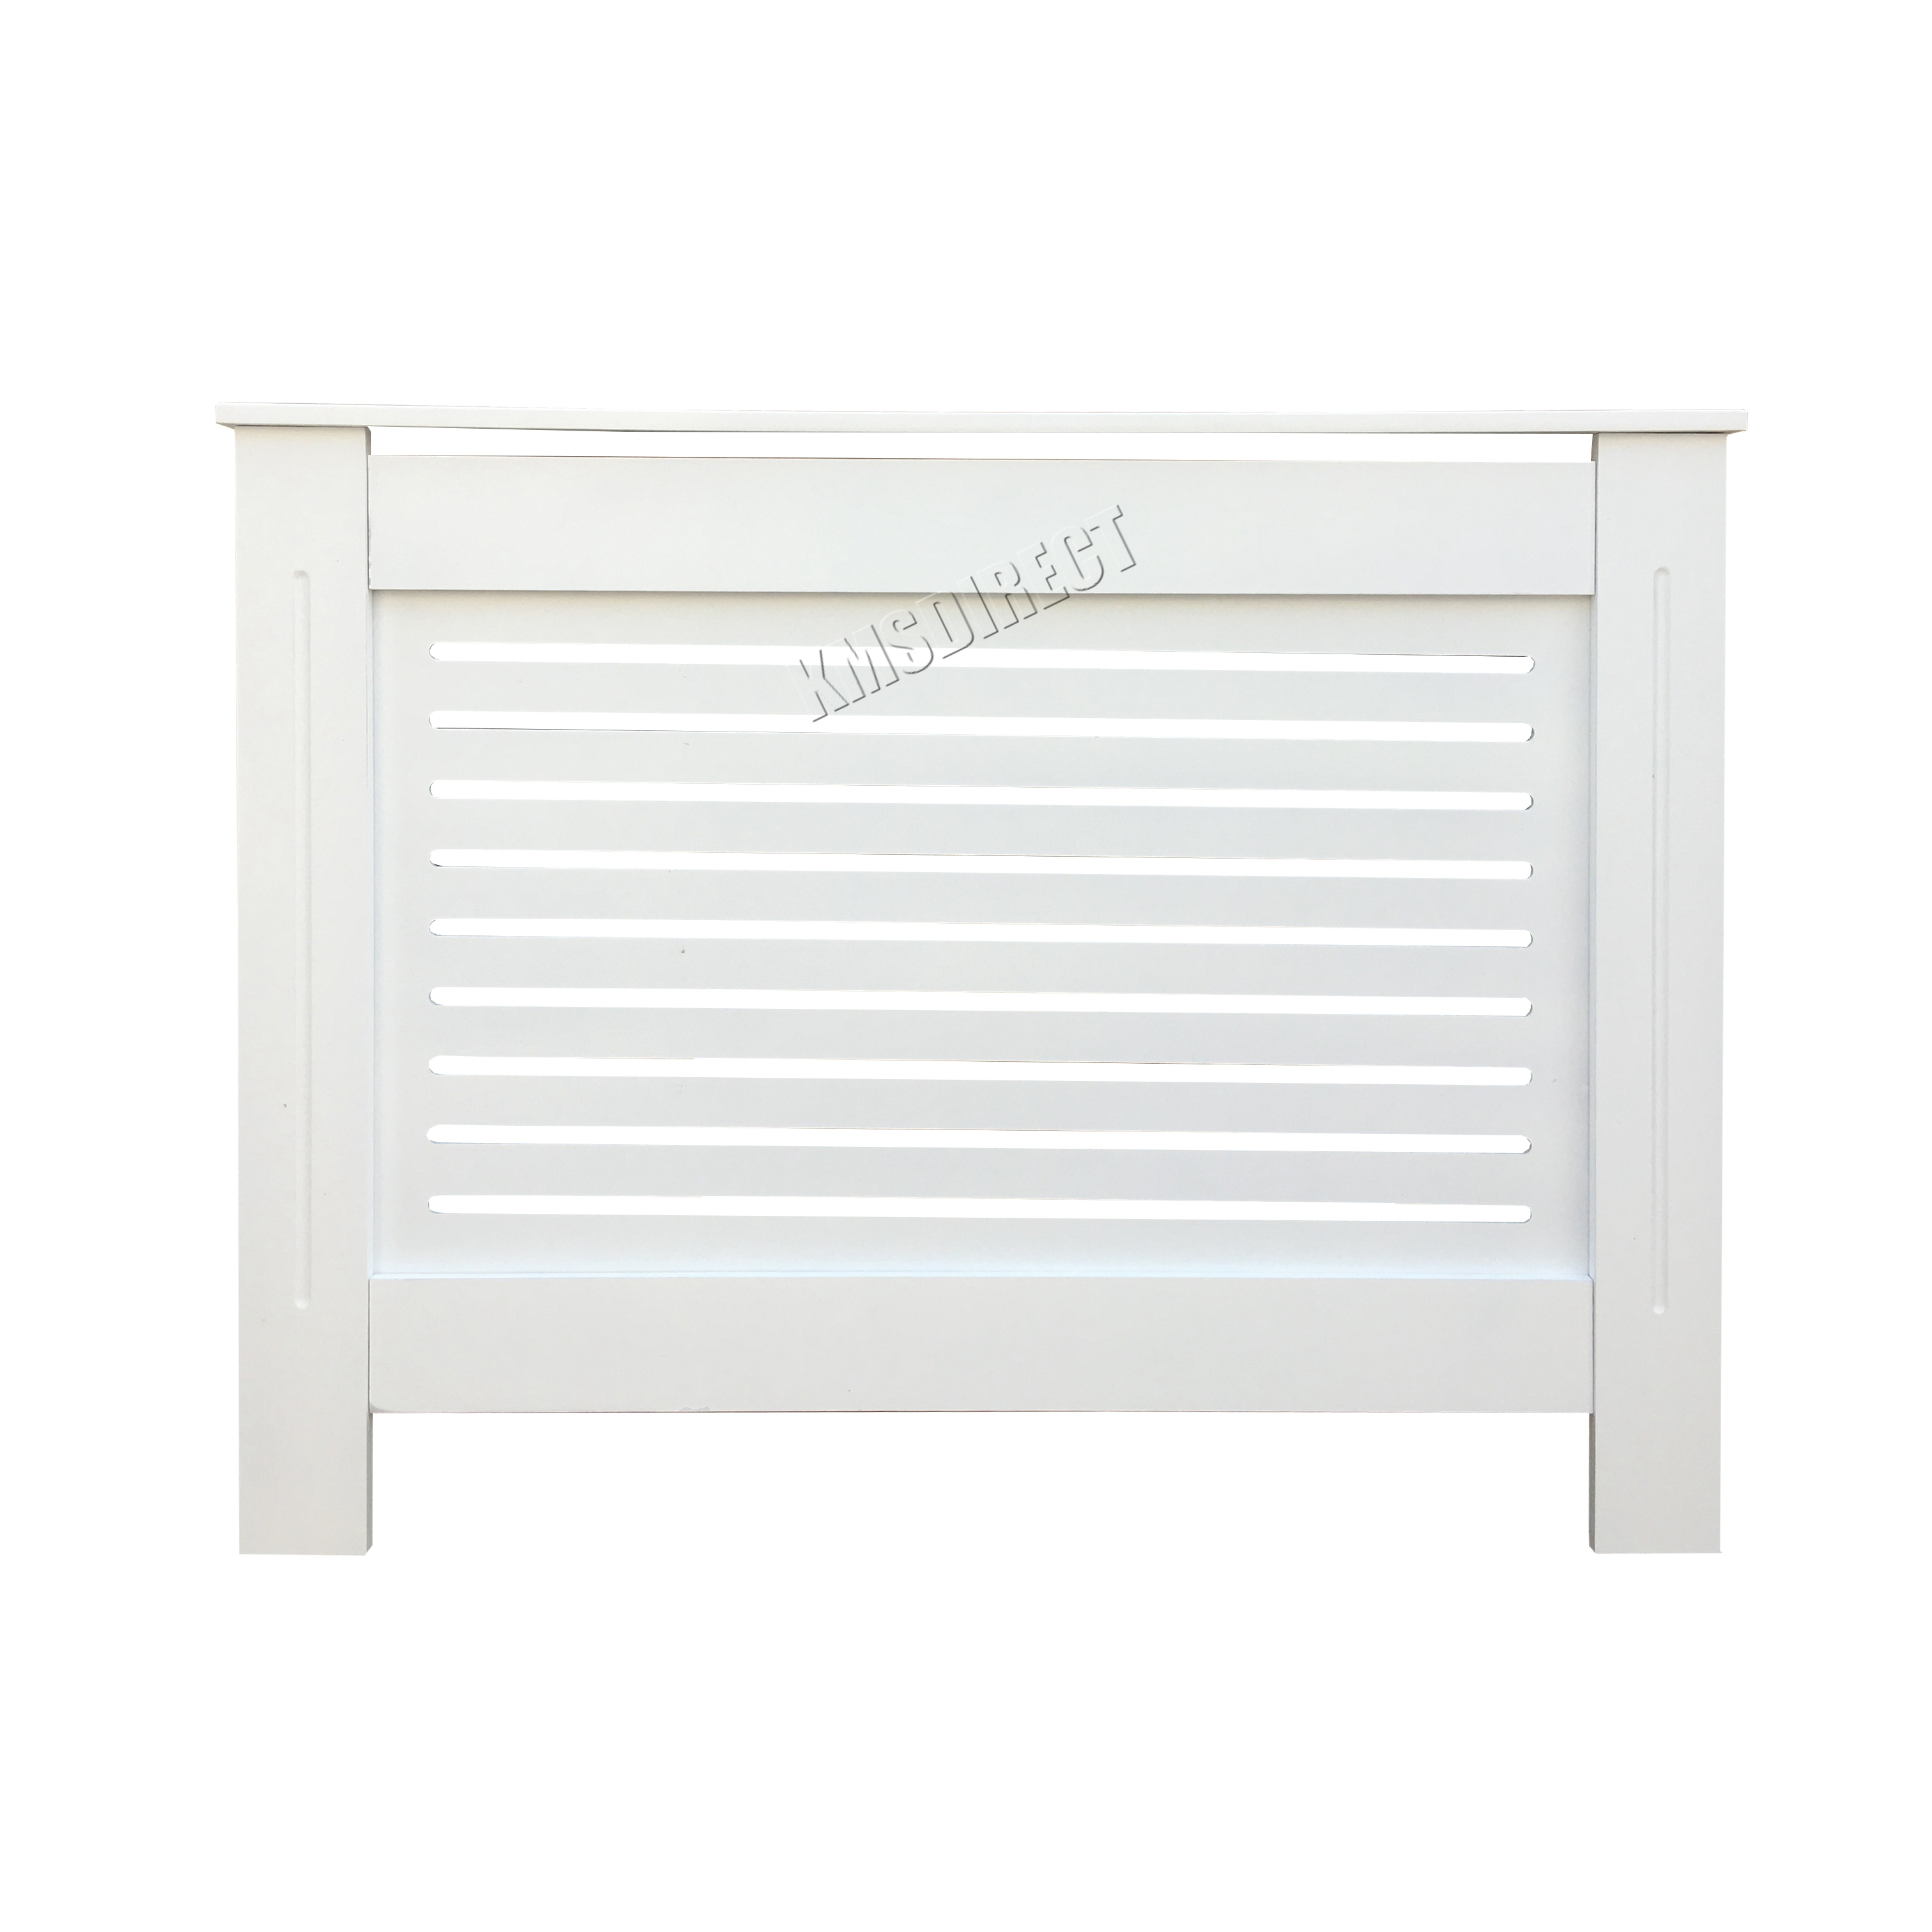 Painting Mdf Kitchen Cabinets White: FoxHunter White Painted Radiator Cover Wall Cabinet Wood